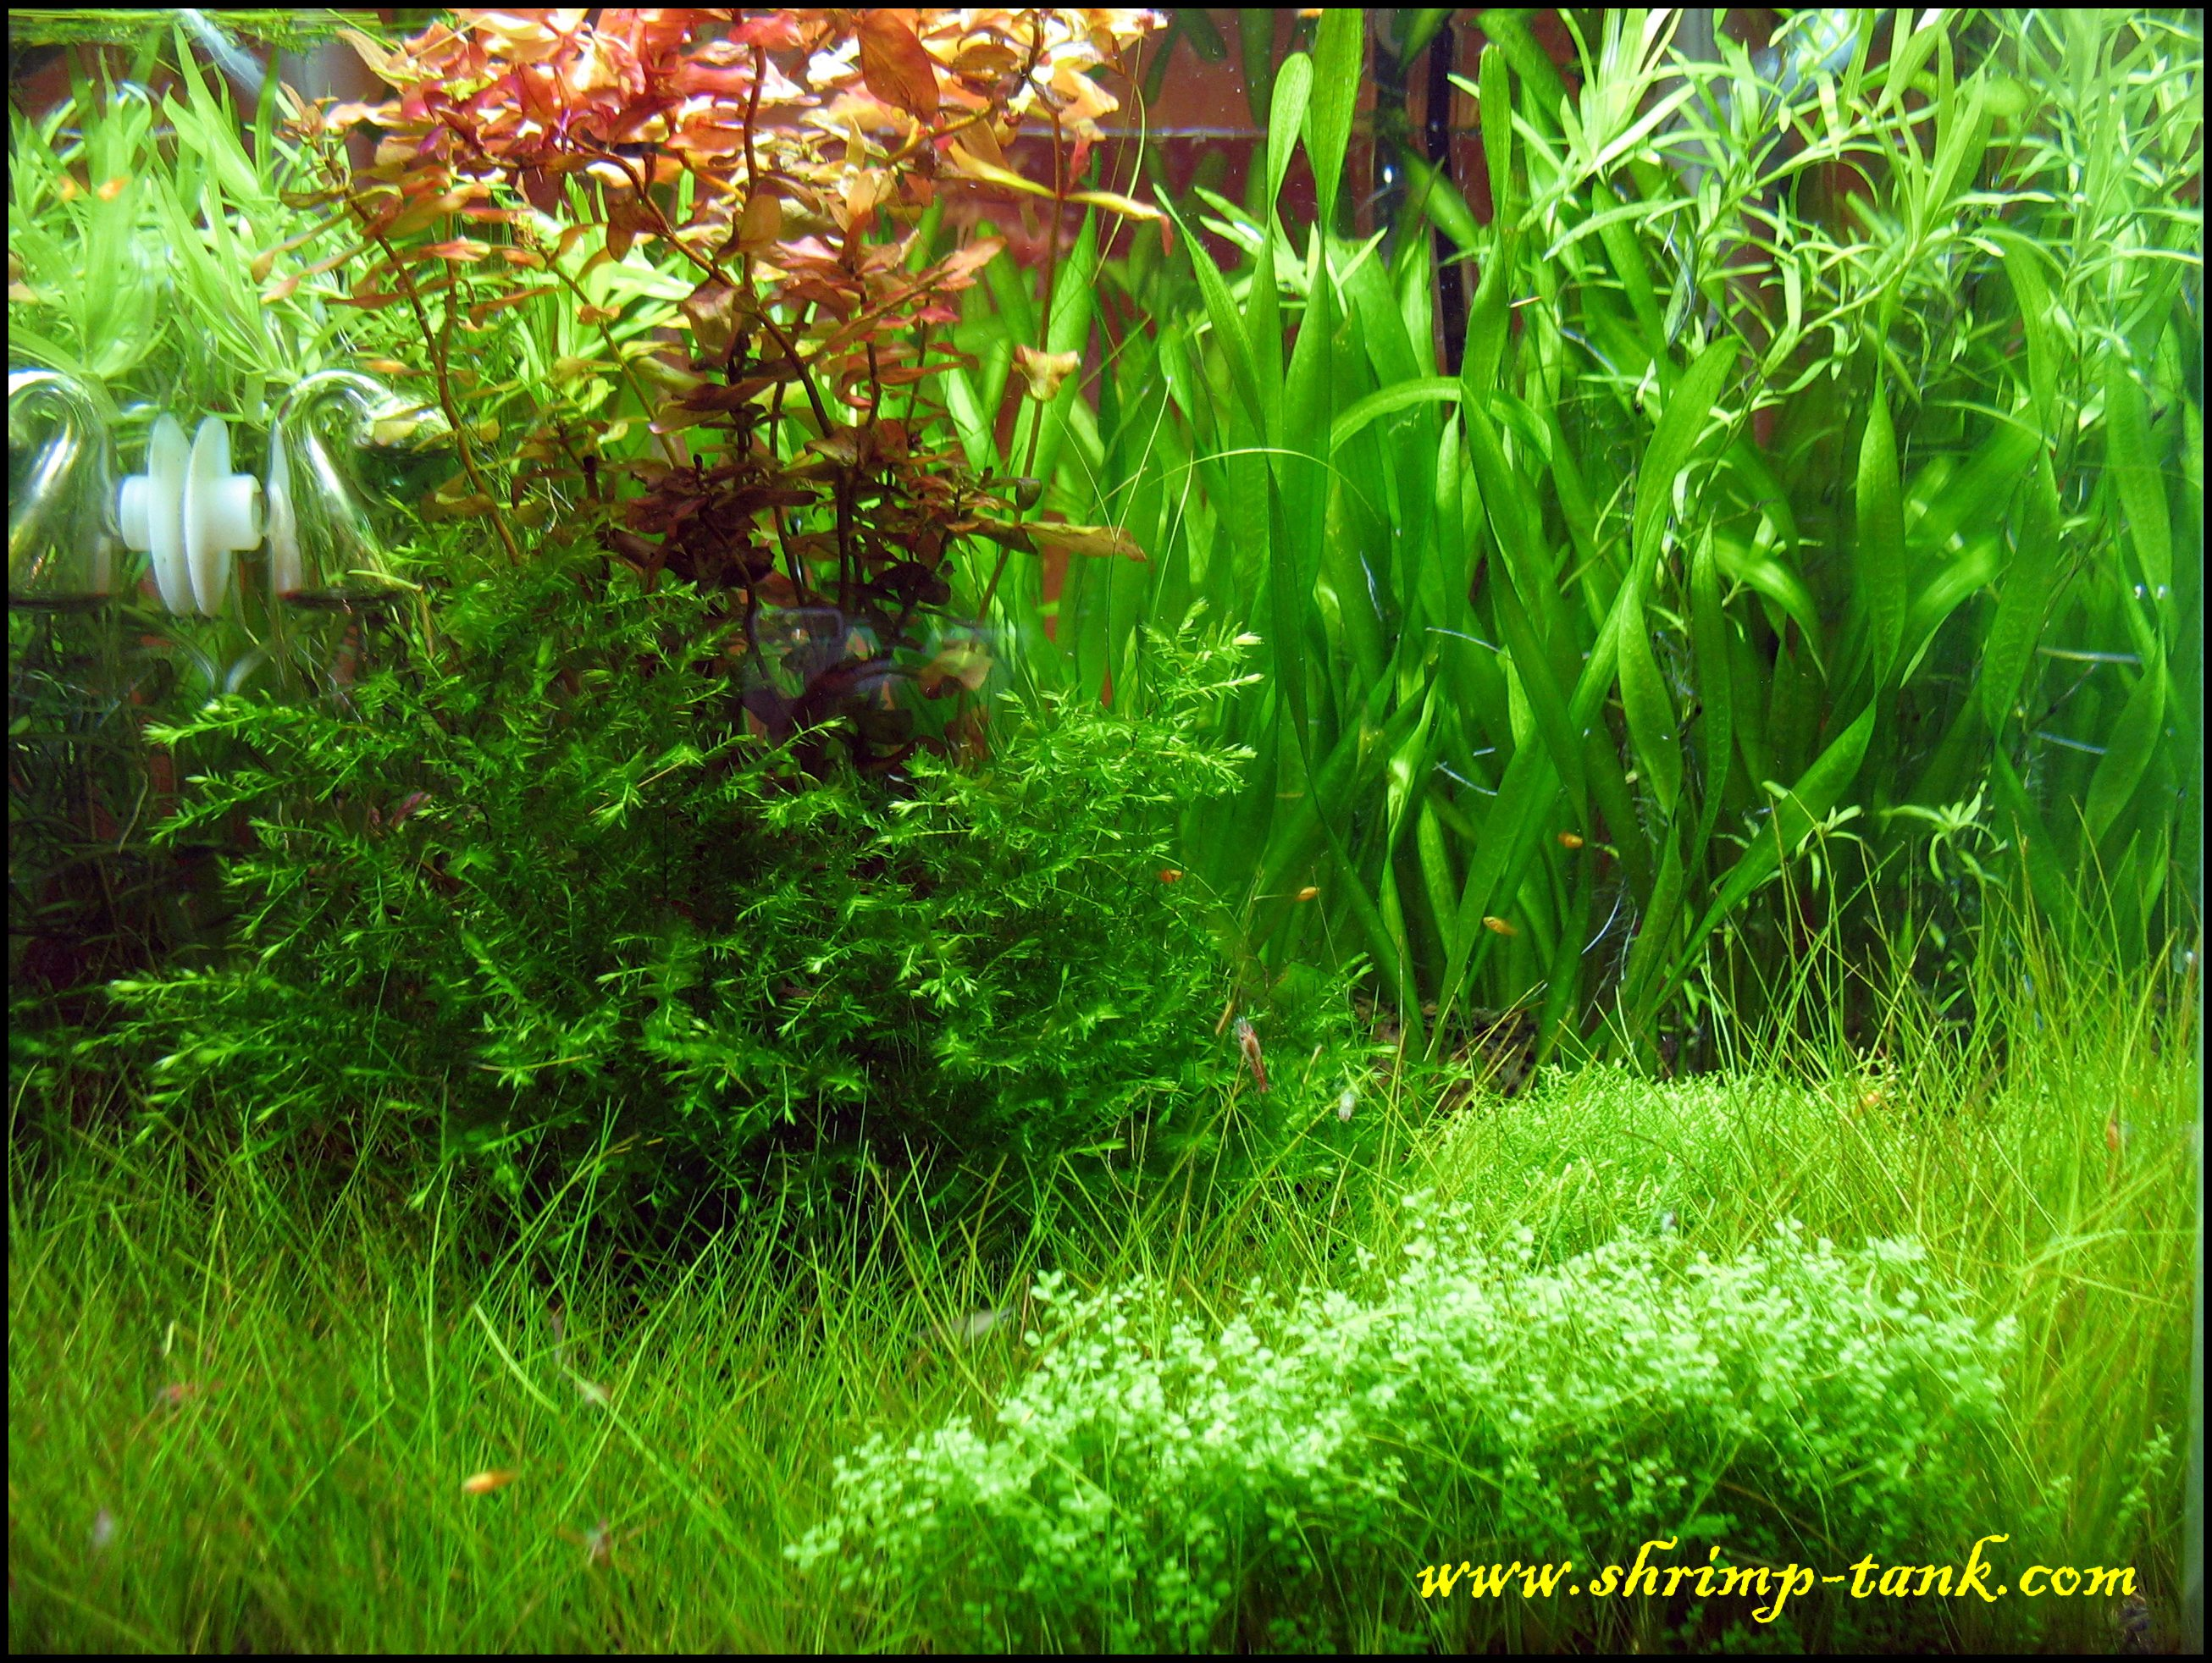 Shrimp cube pictures shrimp tank for Plante aquarium